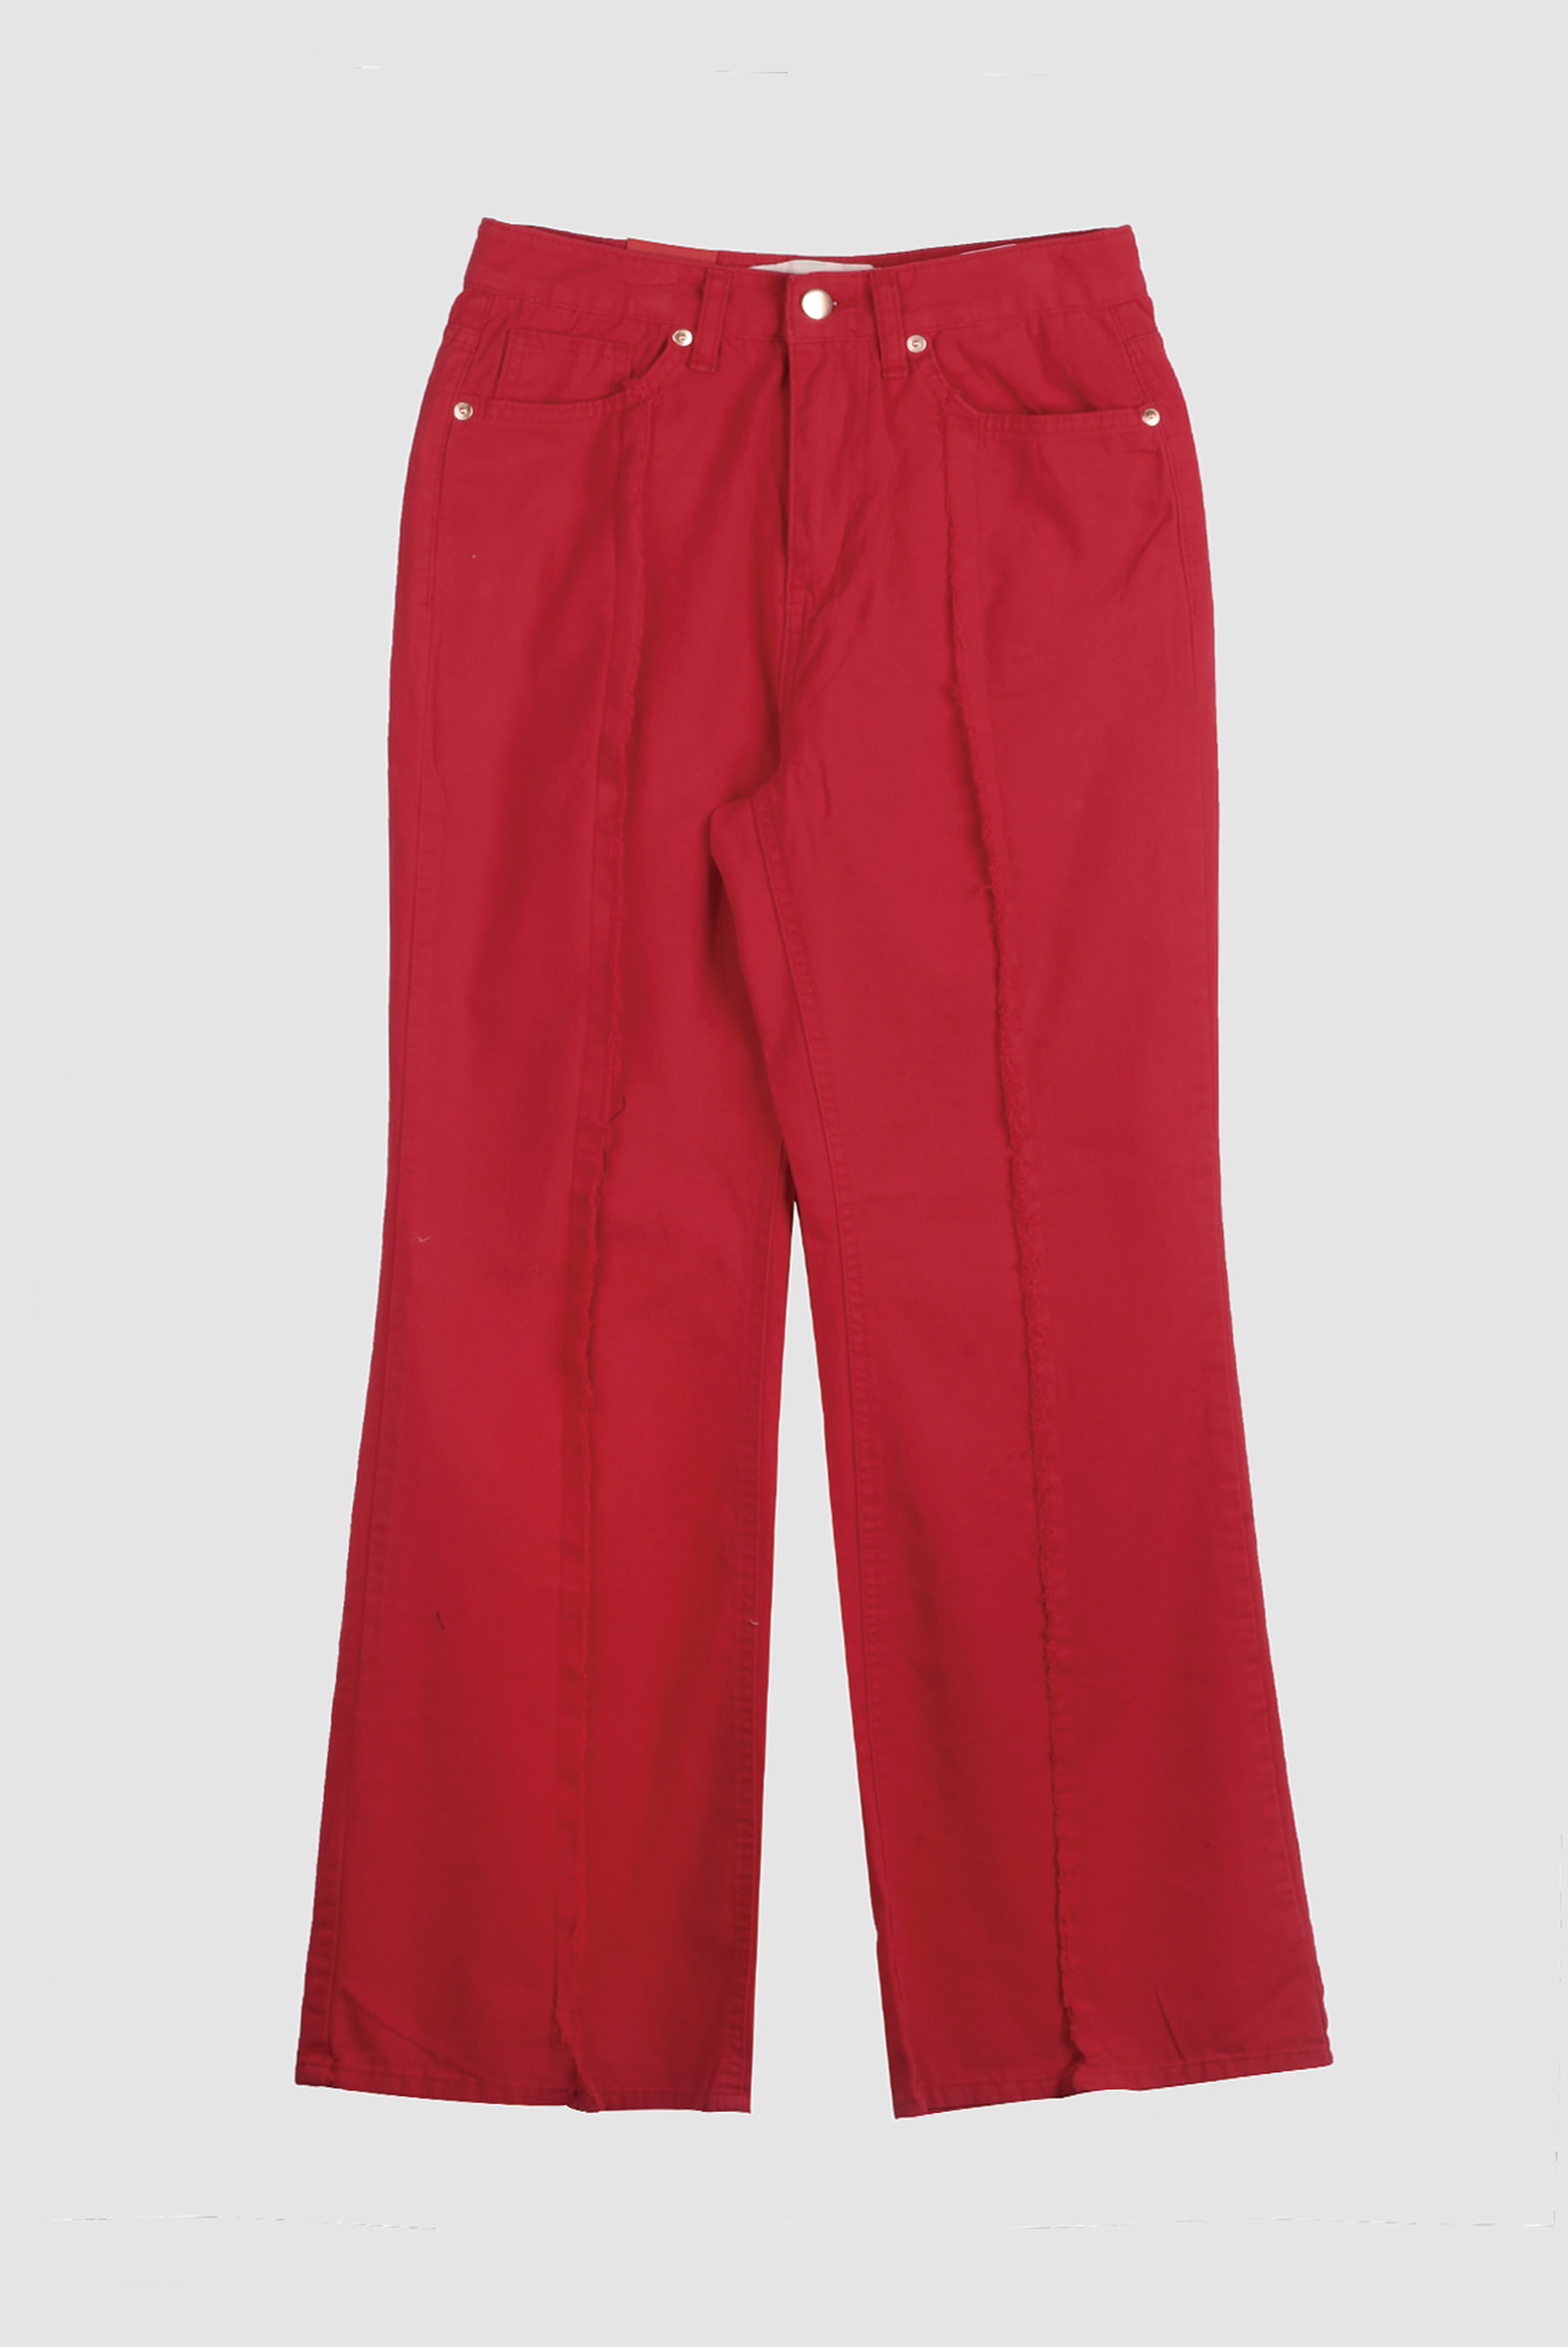 Section_Pin_Tuck_Pants